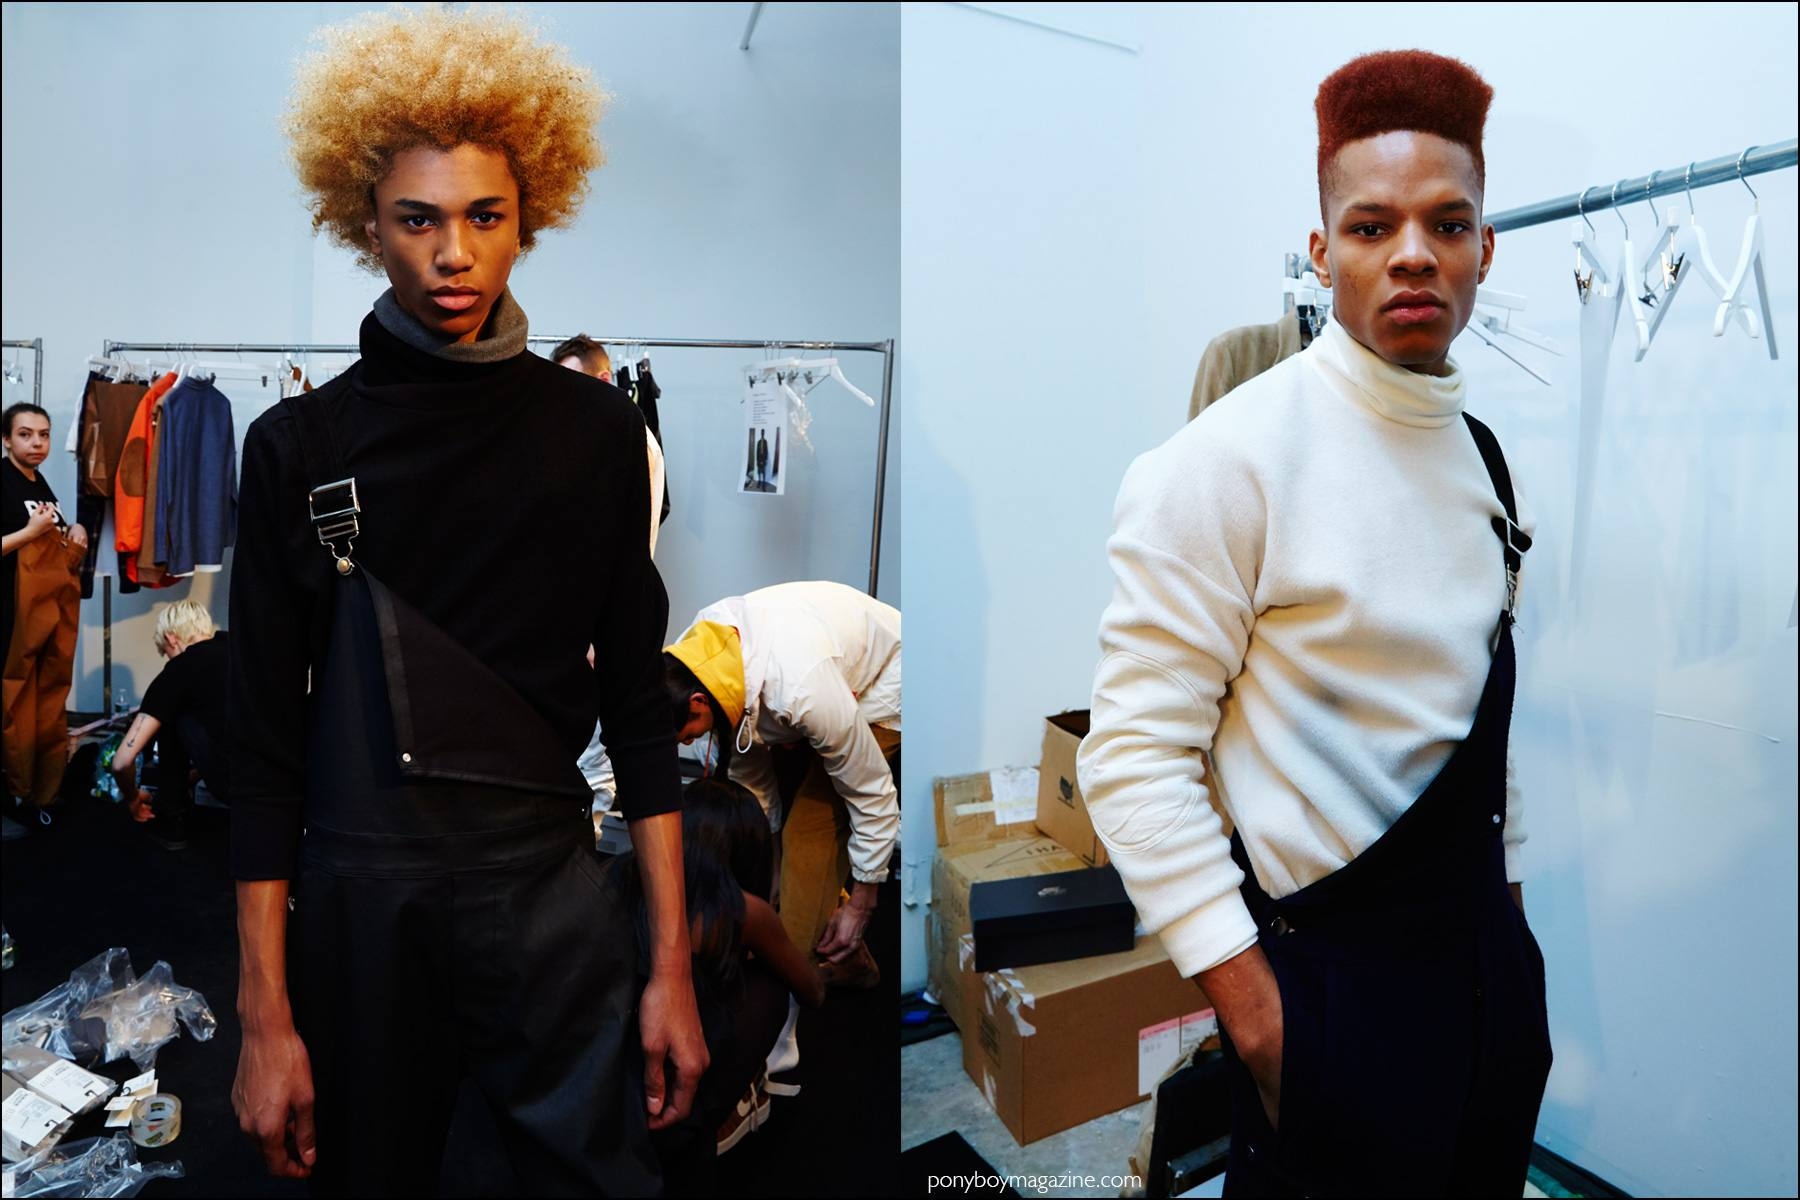 Model Michael Lockley snapped backstage at Rochambeau F/W16 menswear show by Alexander Thompson for Ponyboy magazine NY.